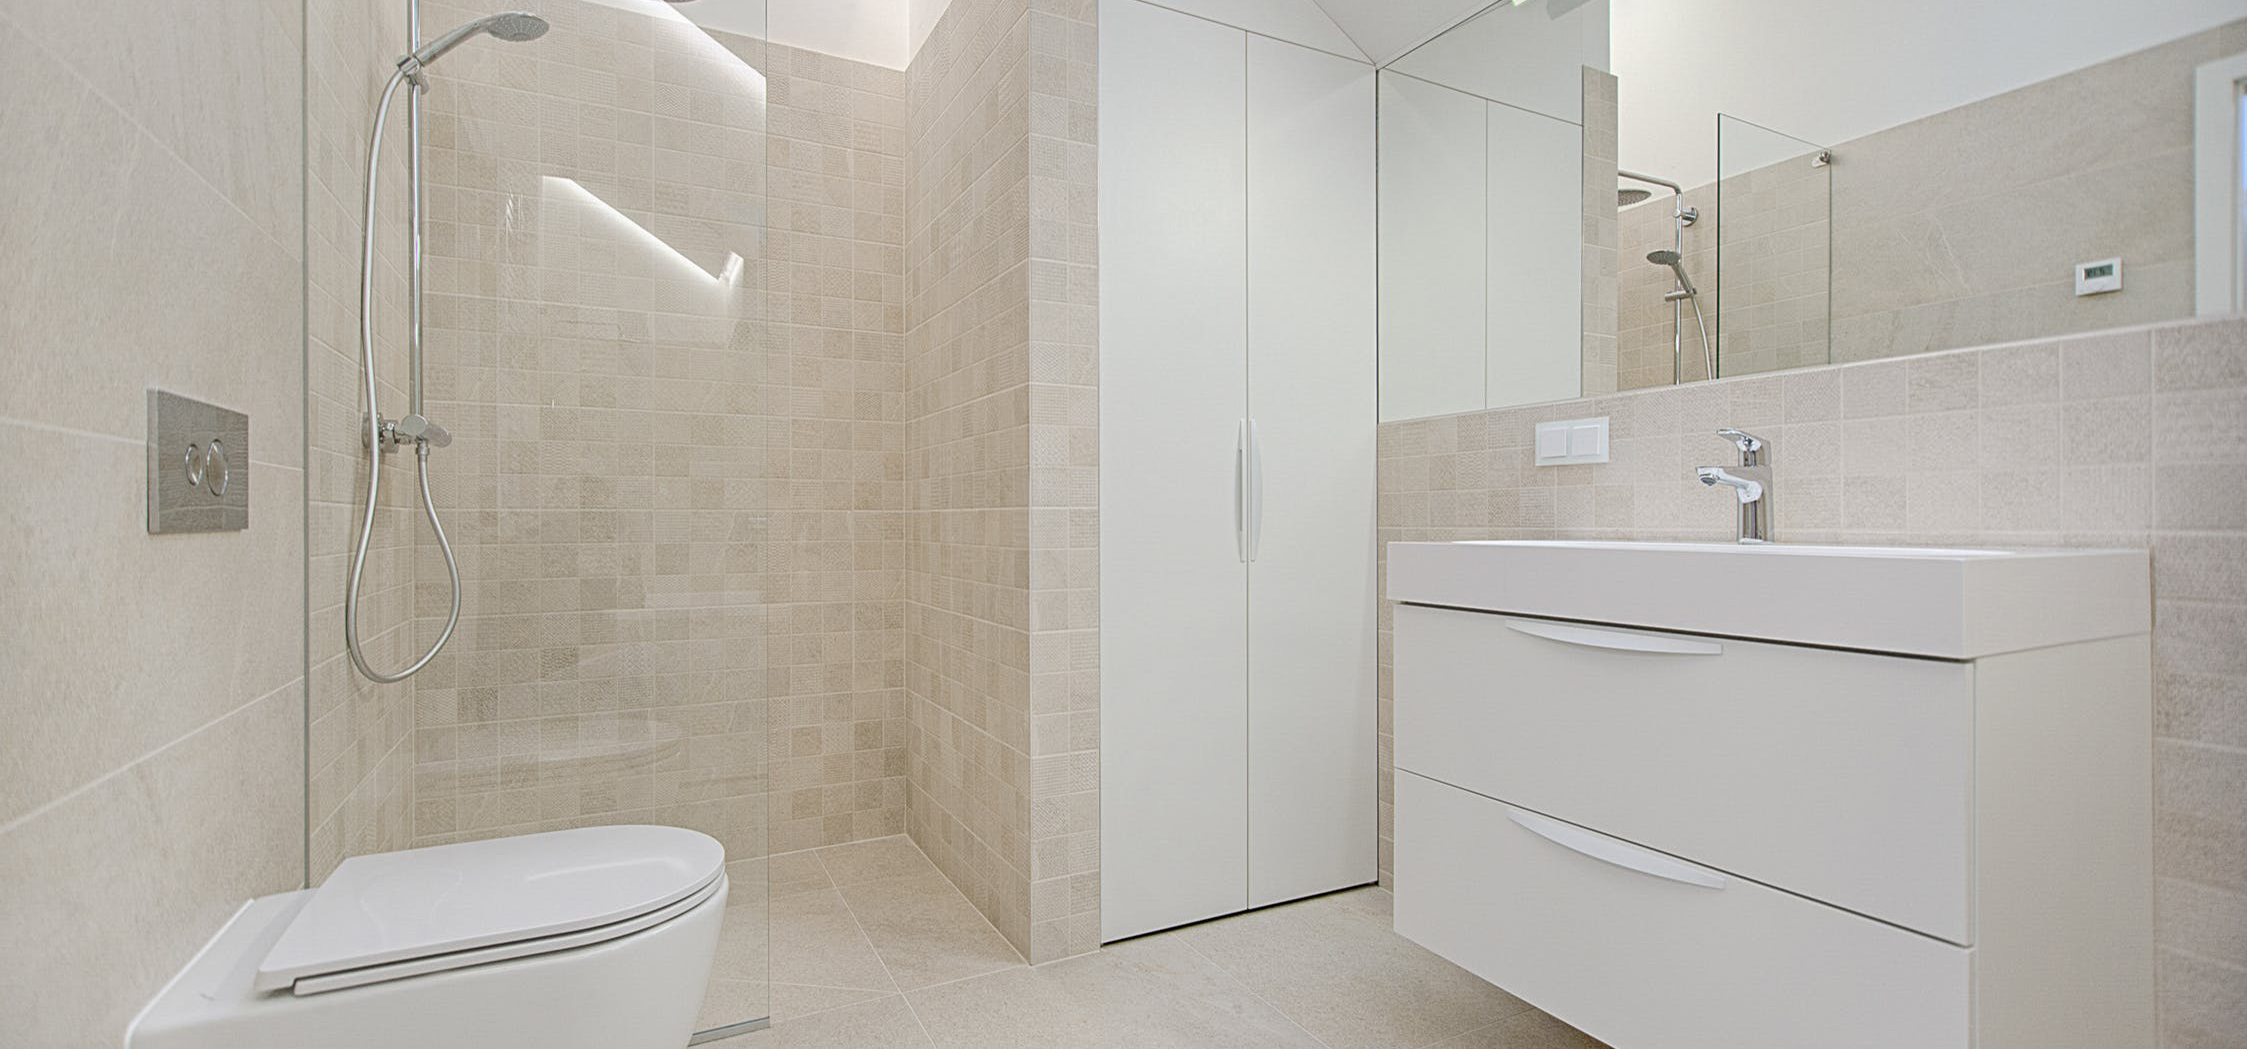 5-important-details-that-make-a-great-bathroom-5.jpeg